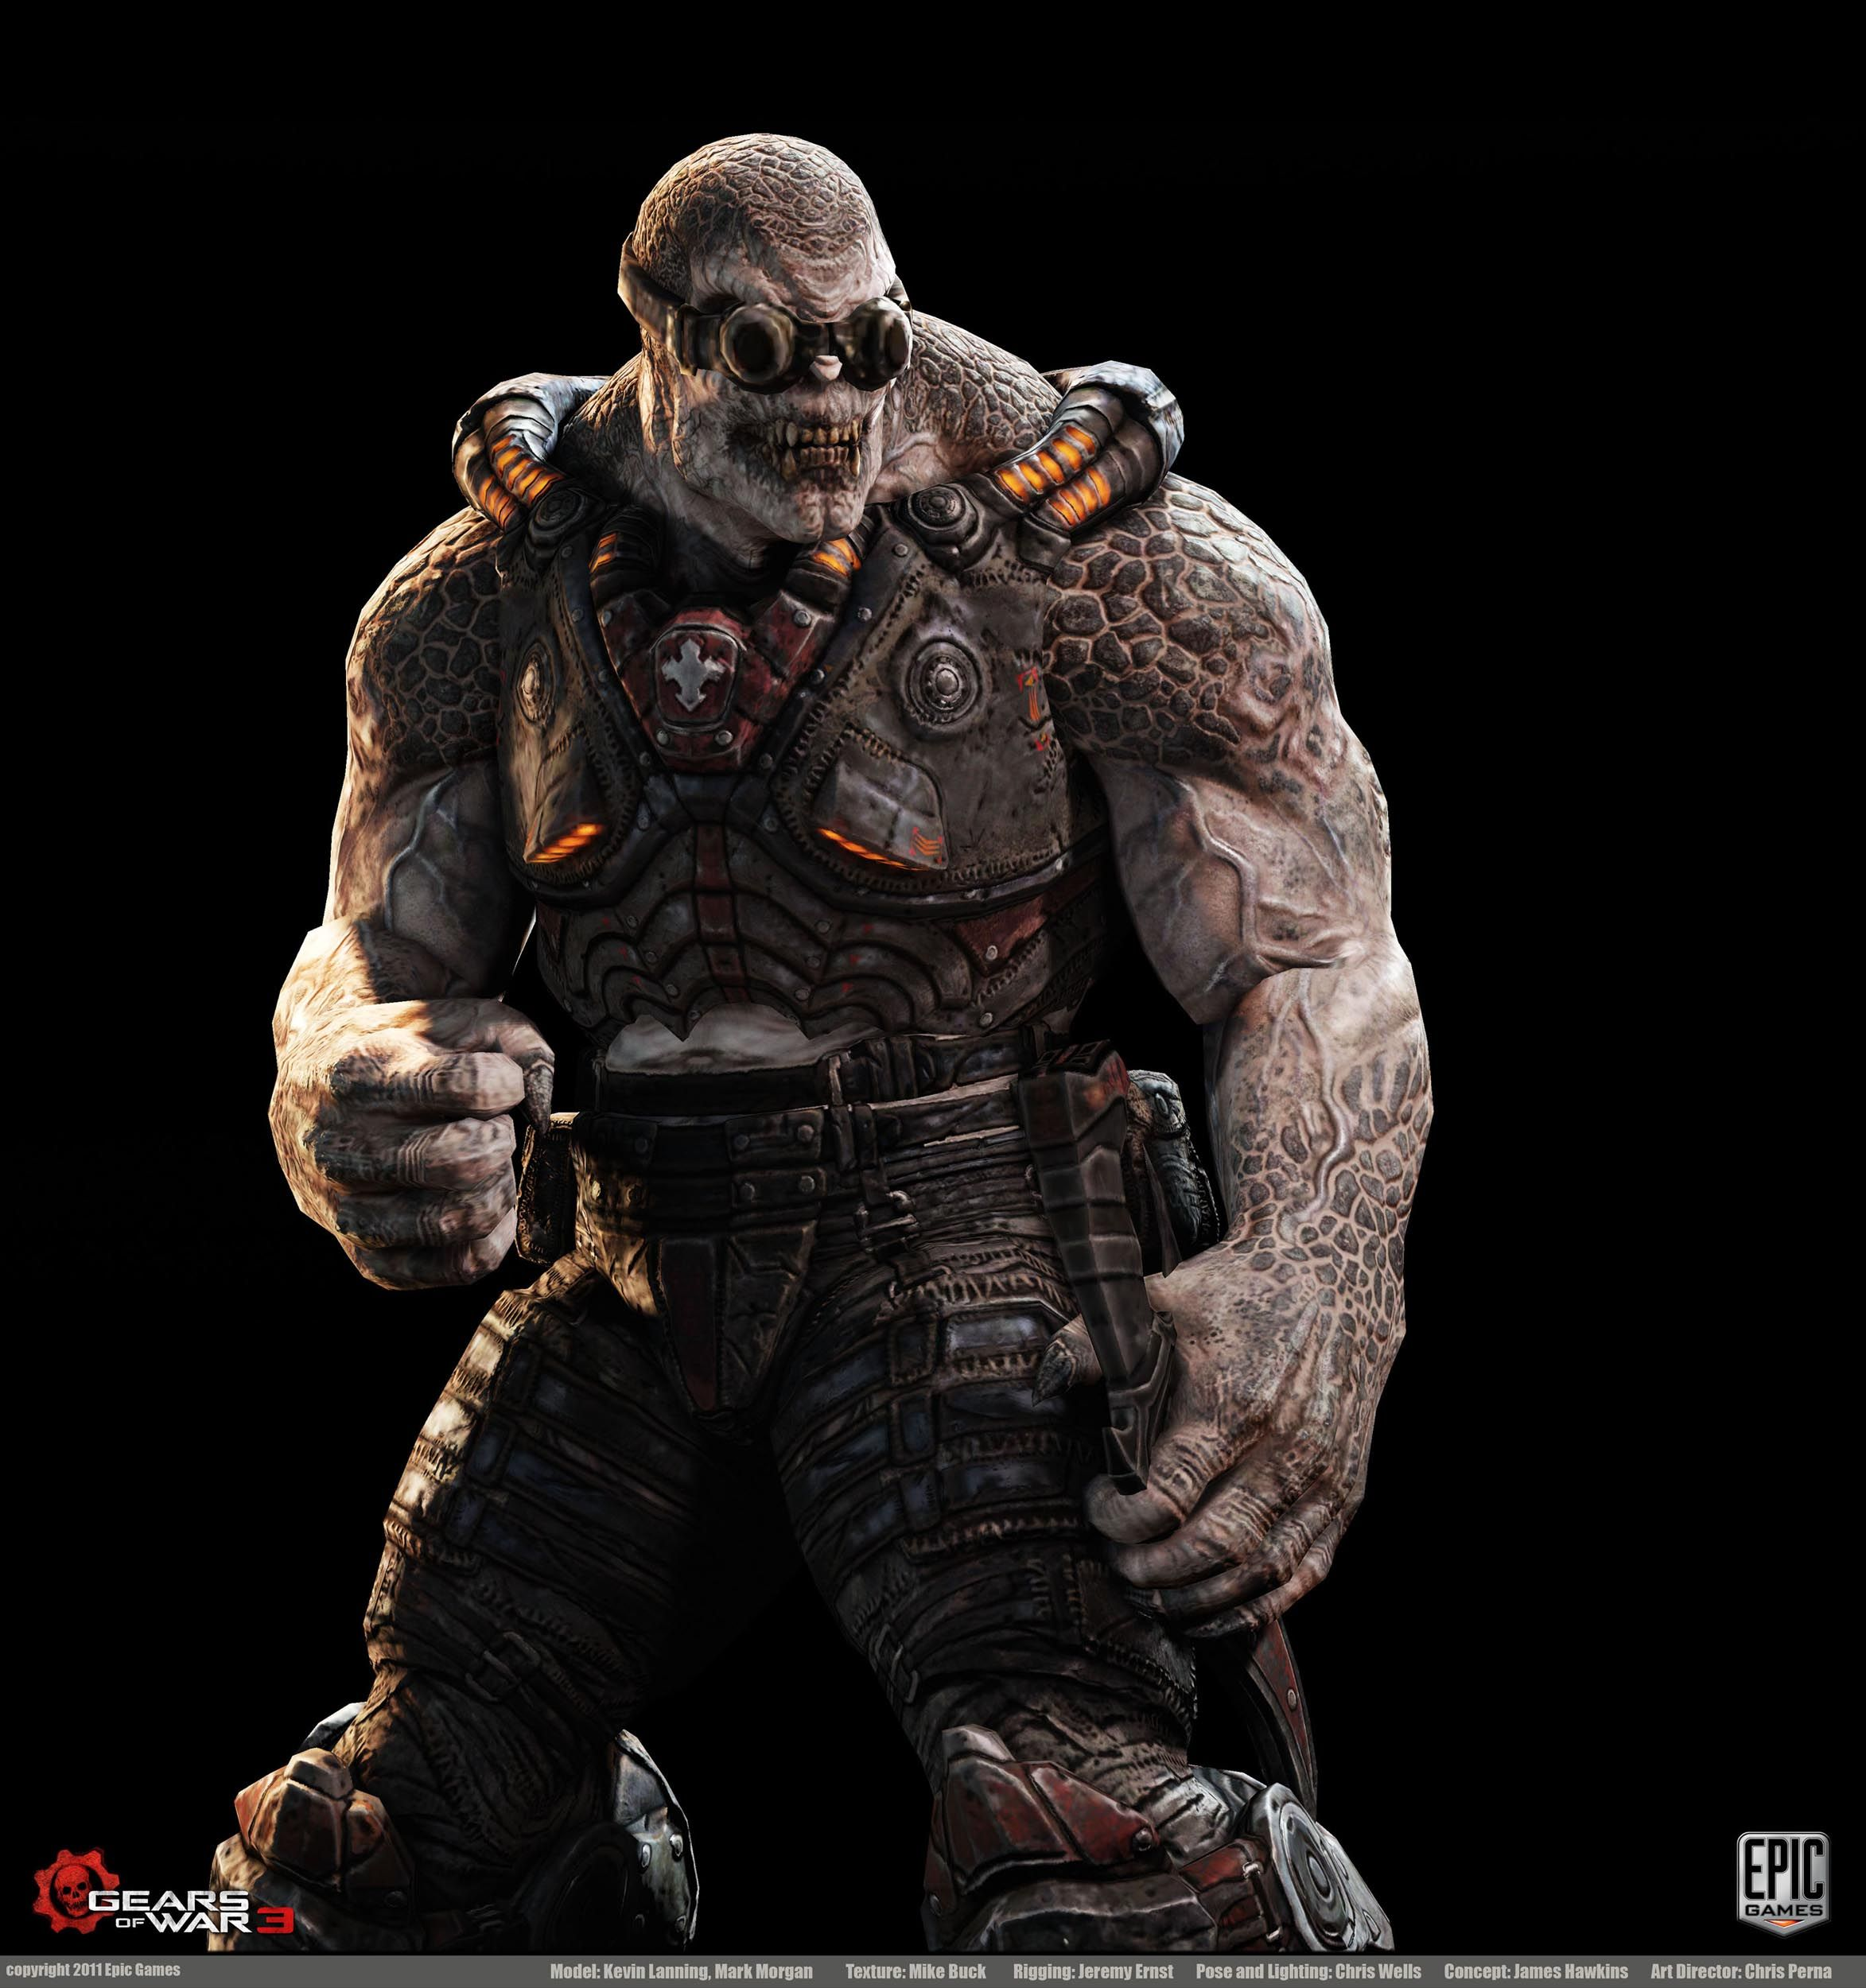 Gears Of War 3 Character Art Dump New Images Posted On Pg 17  # Muebles Hipo Gegant